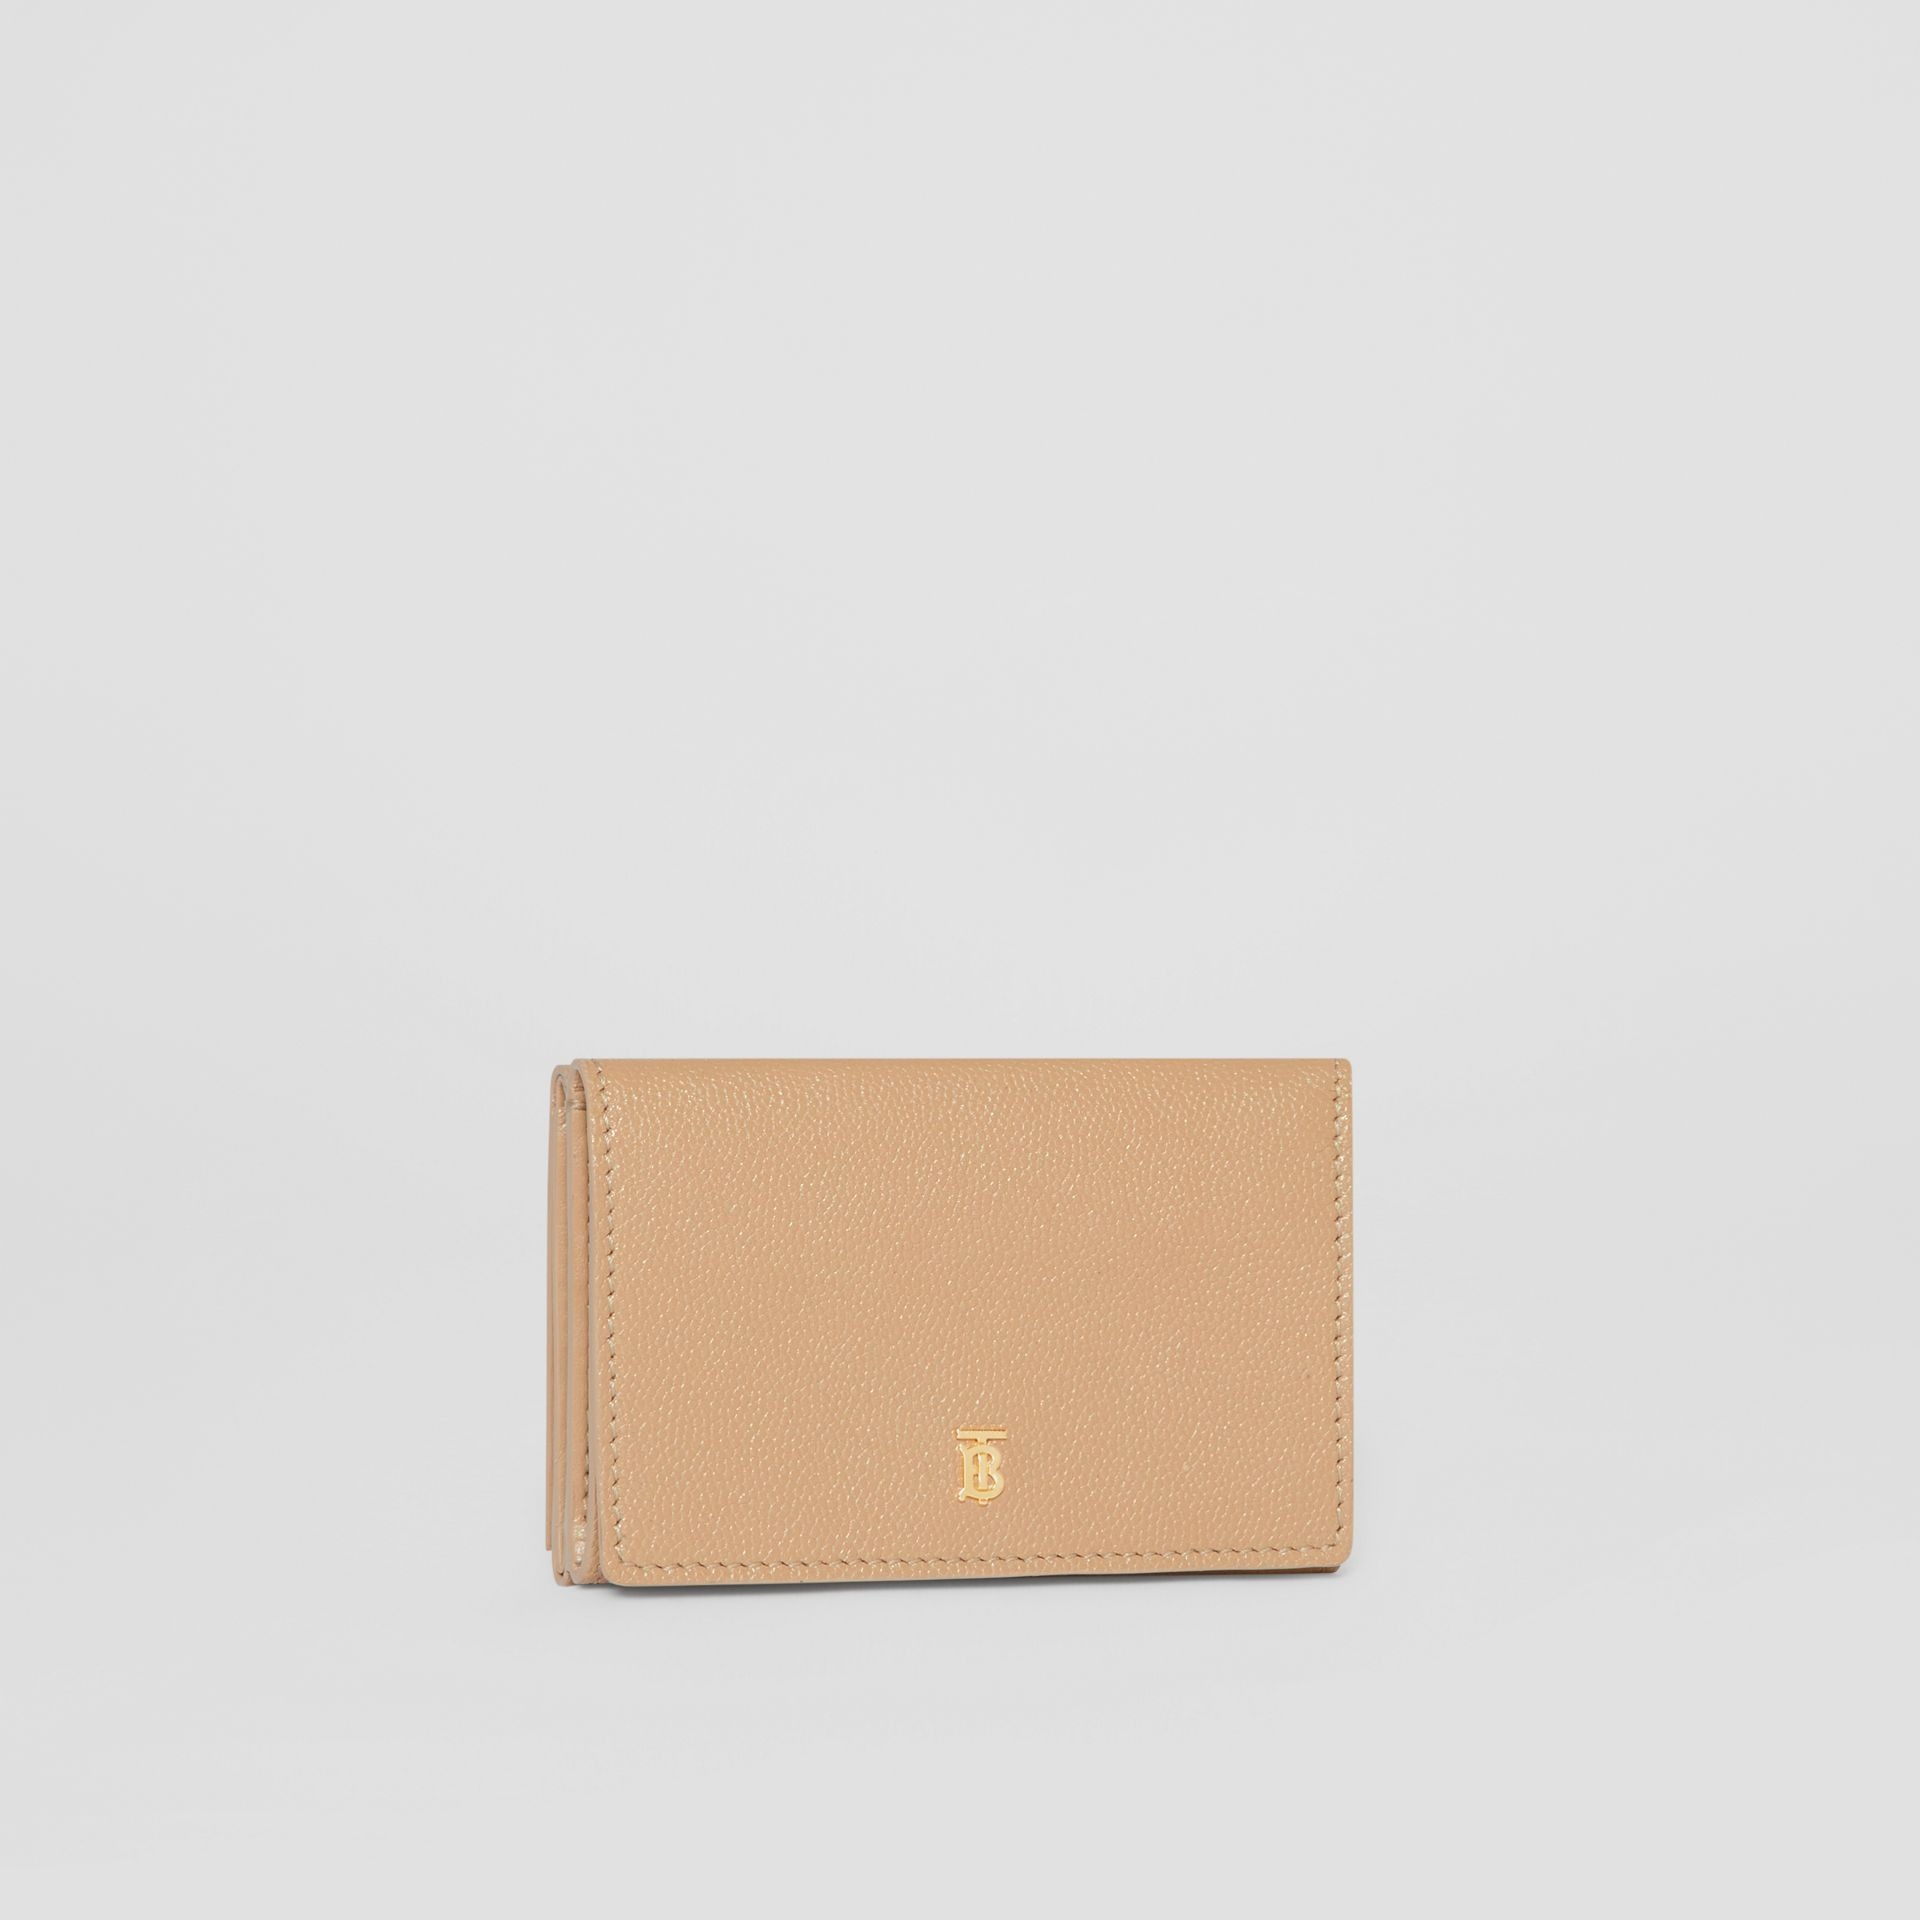 Small Grainy Leather Folding Wallet in Archive Beige - Women | Burberry Singapore - gallery image 3